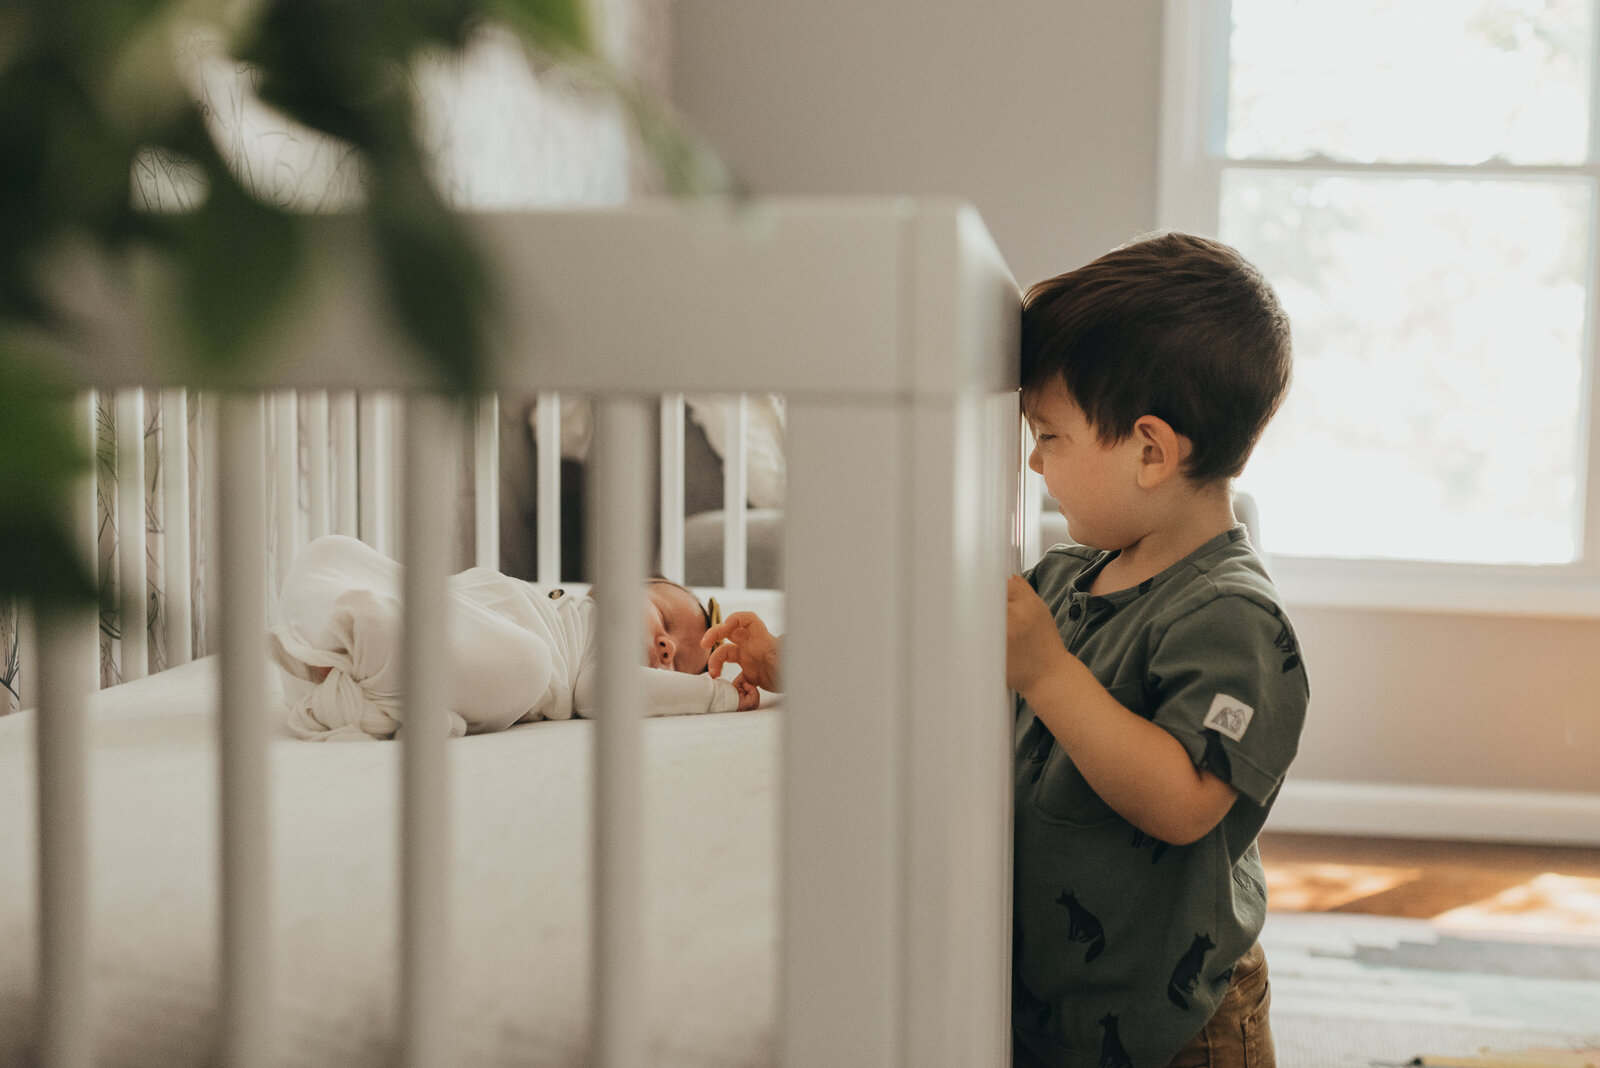 brother reaching through crib to baby